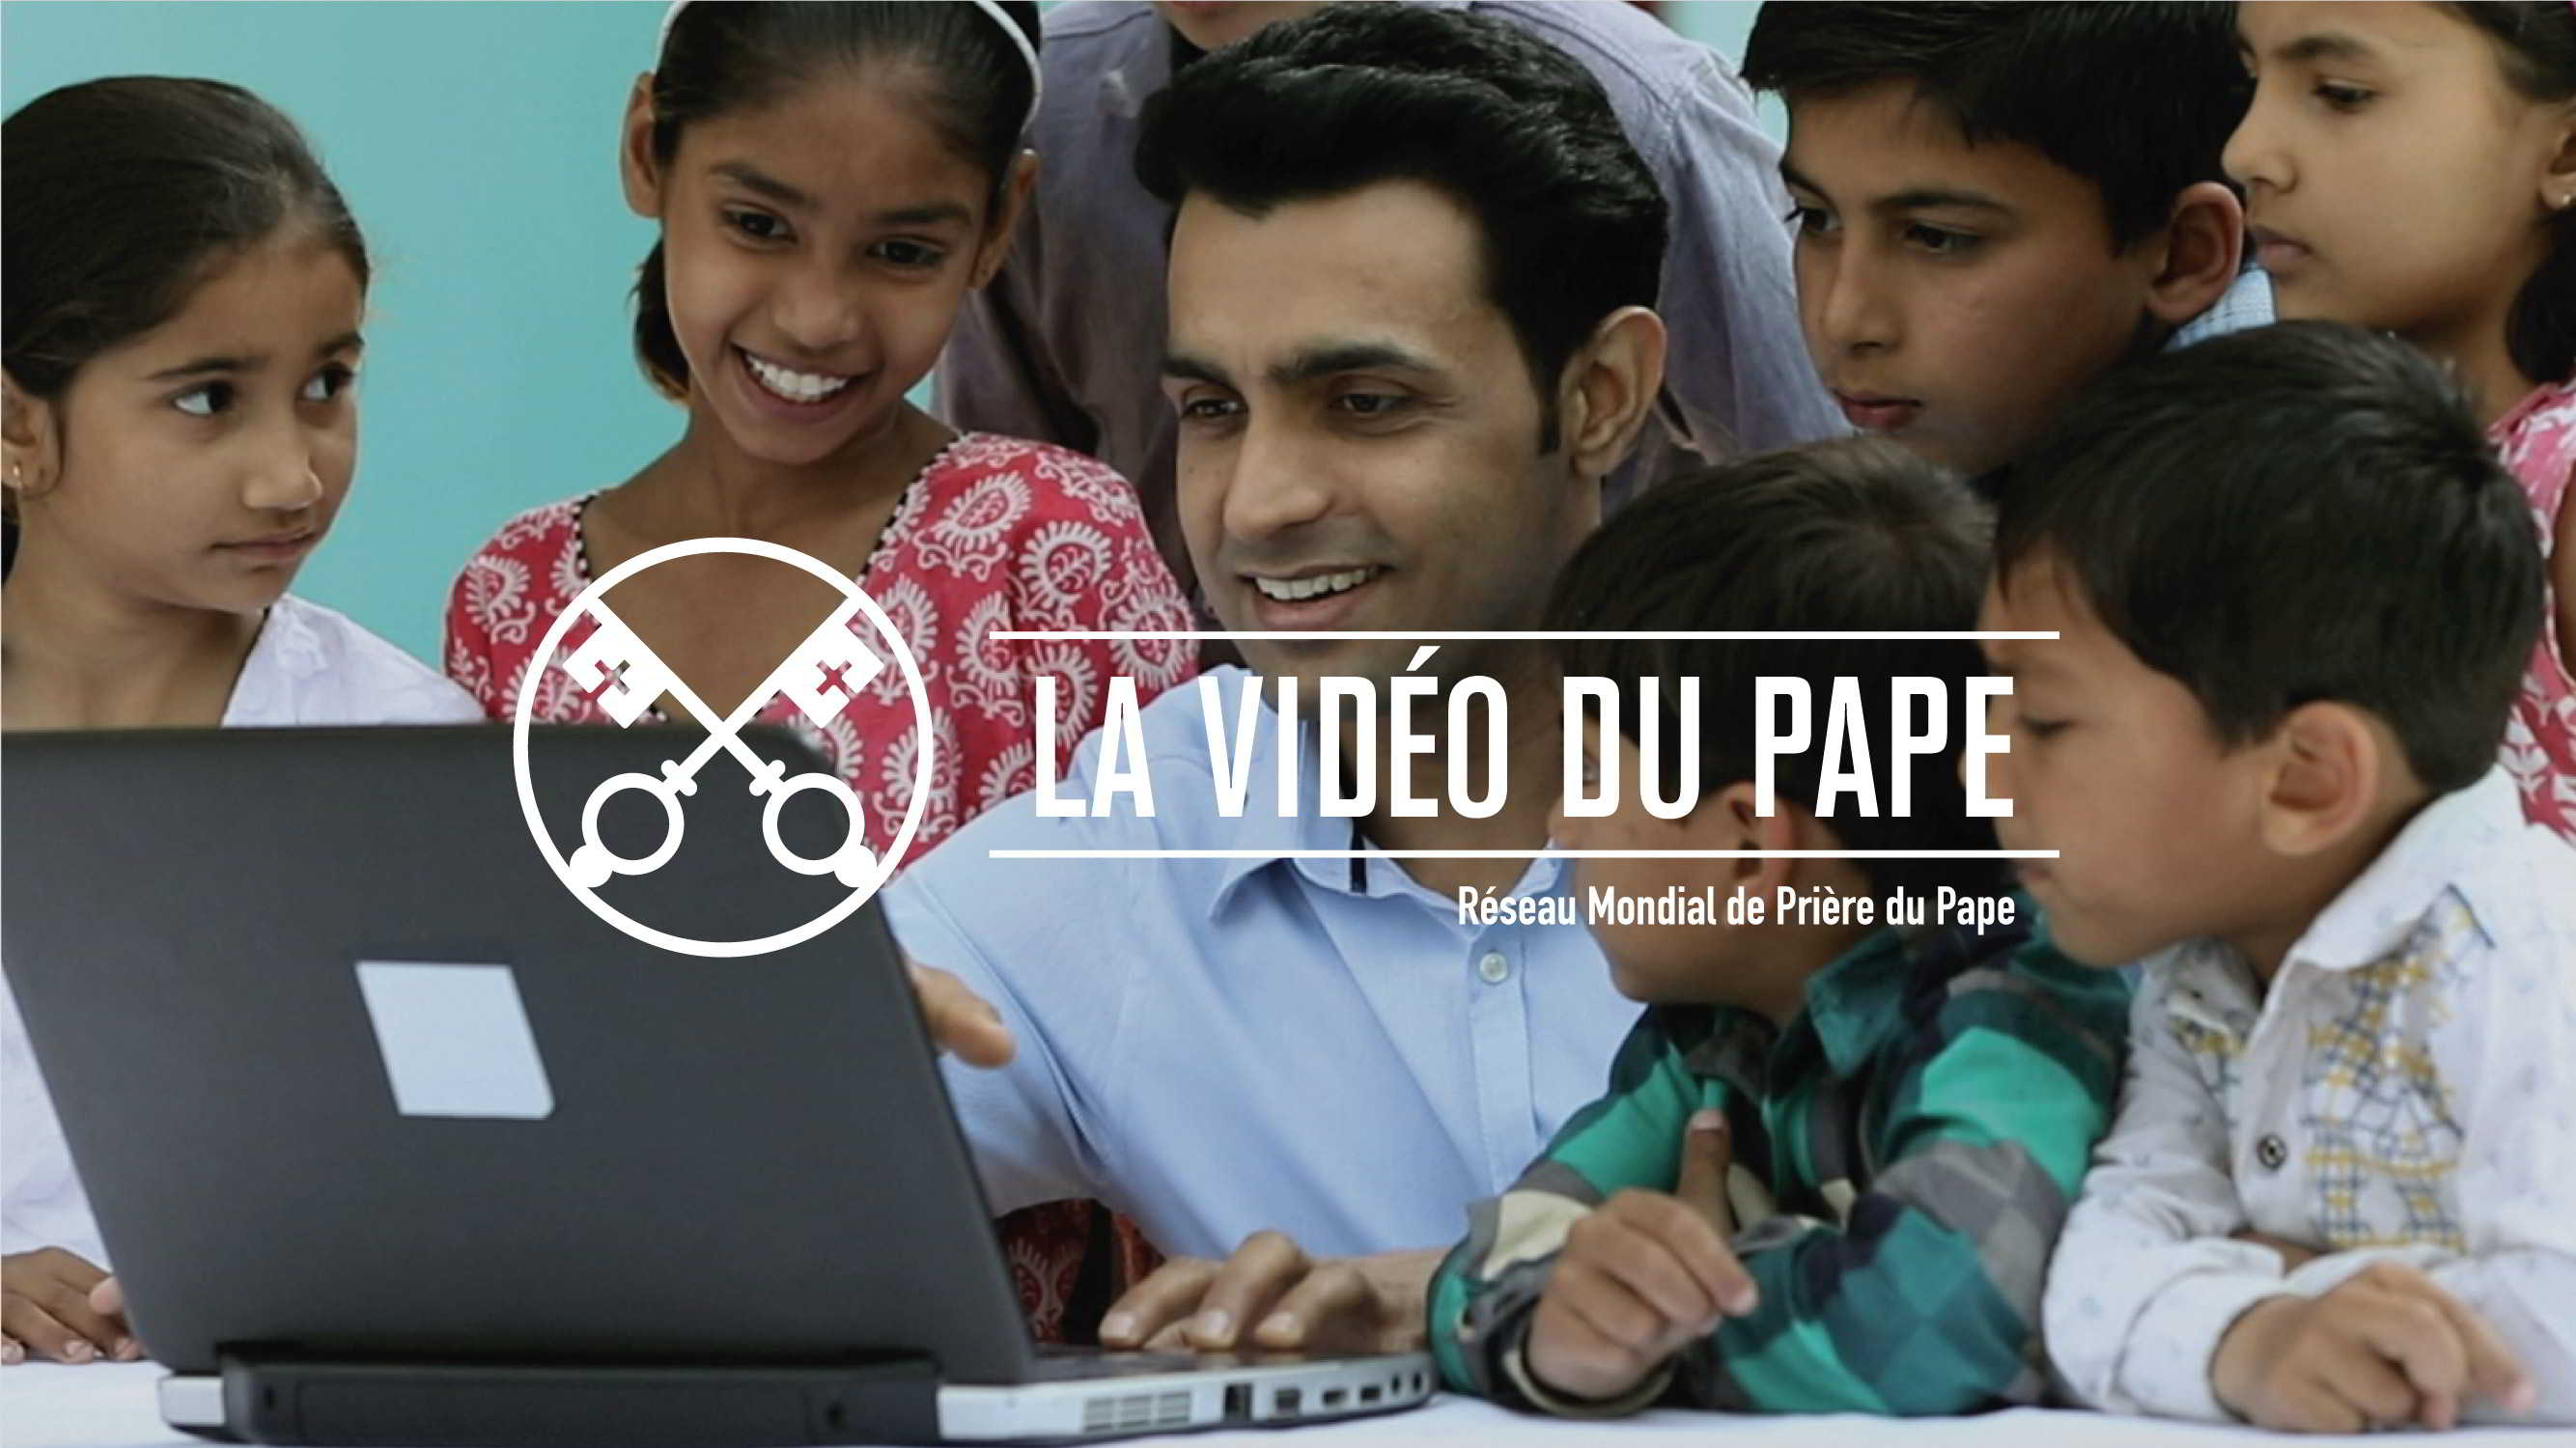 Official-Image-The-Pope-Video-6-JUN-Social-Networks-4-French